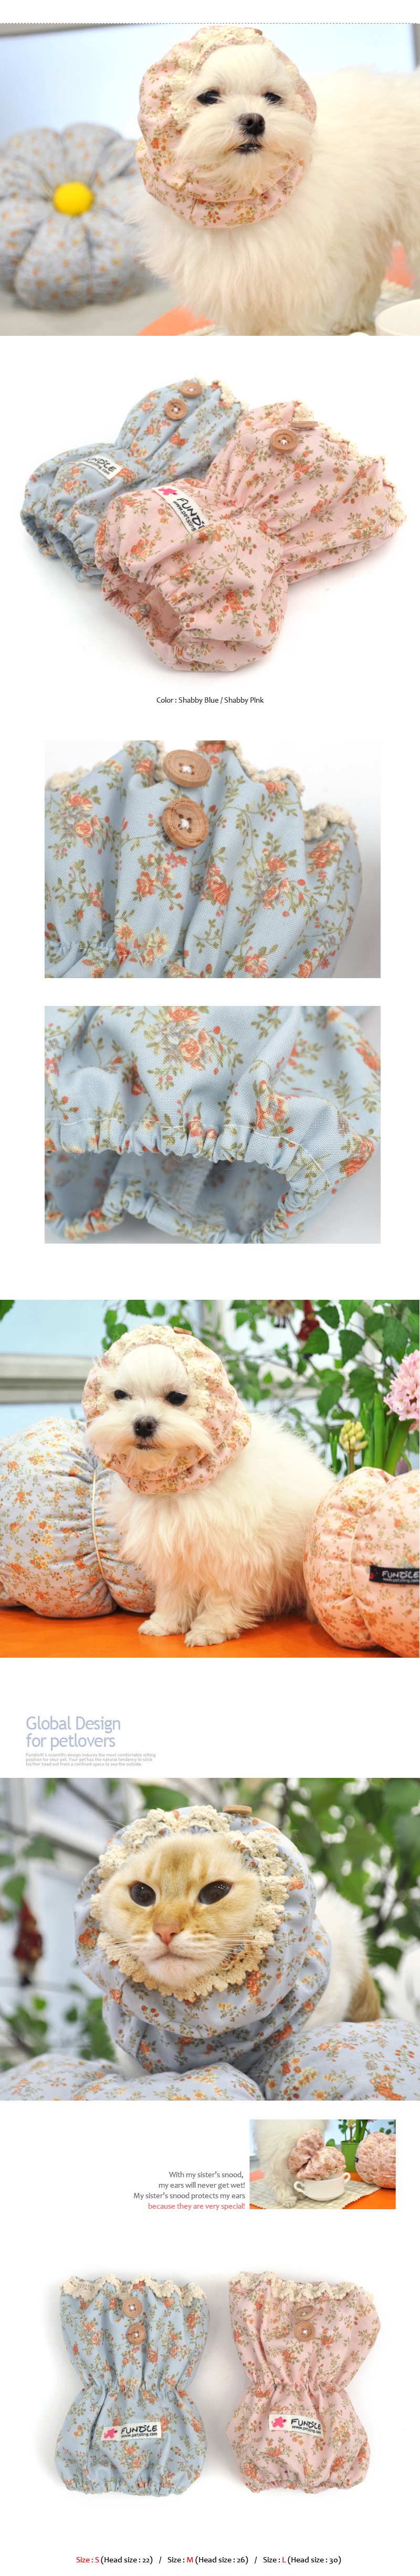 pet fashion apparel